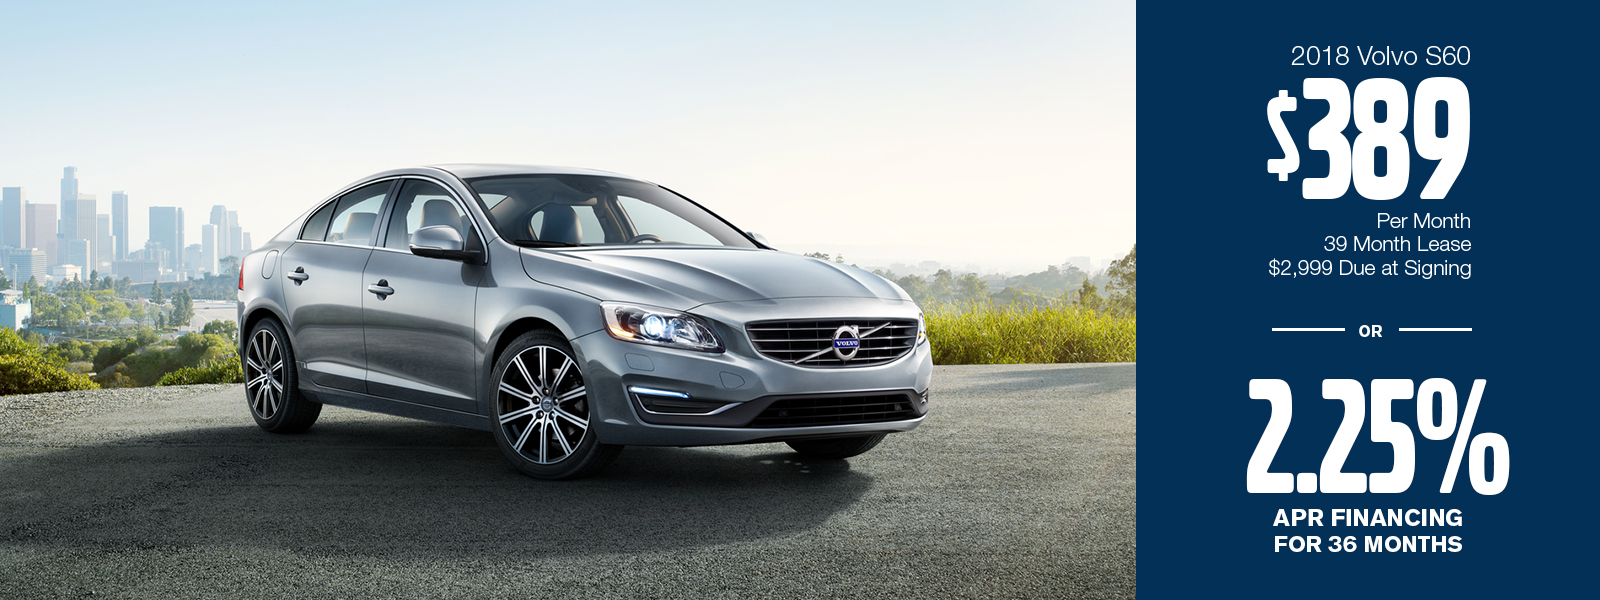 2018 Volvo S60 Lease or Low APR Special in Gilbert, AZ